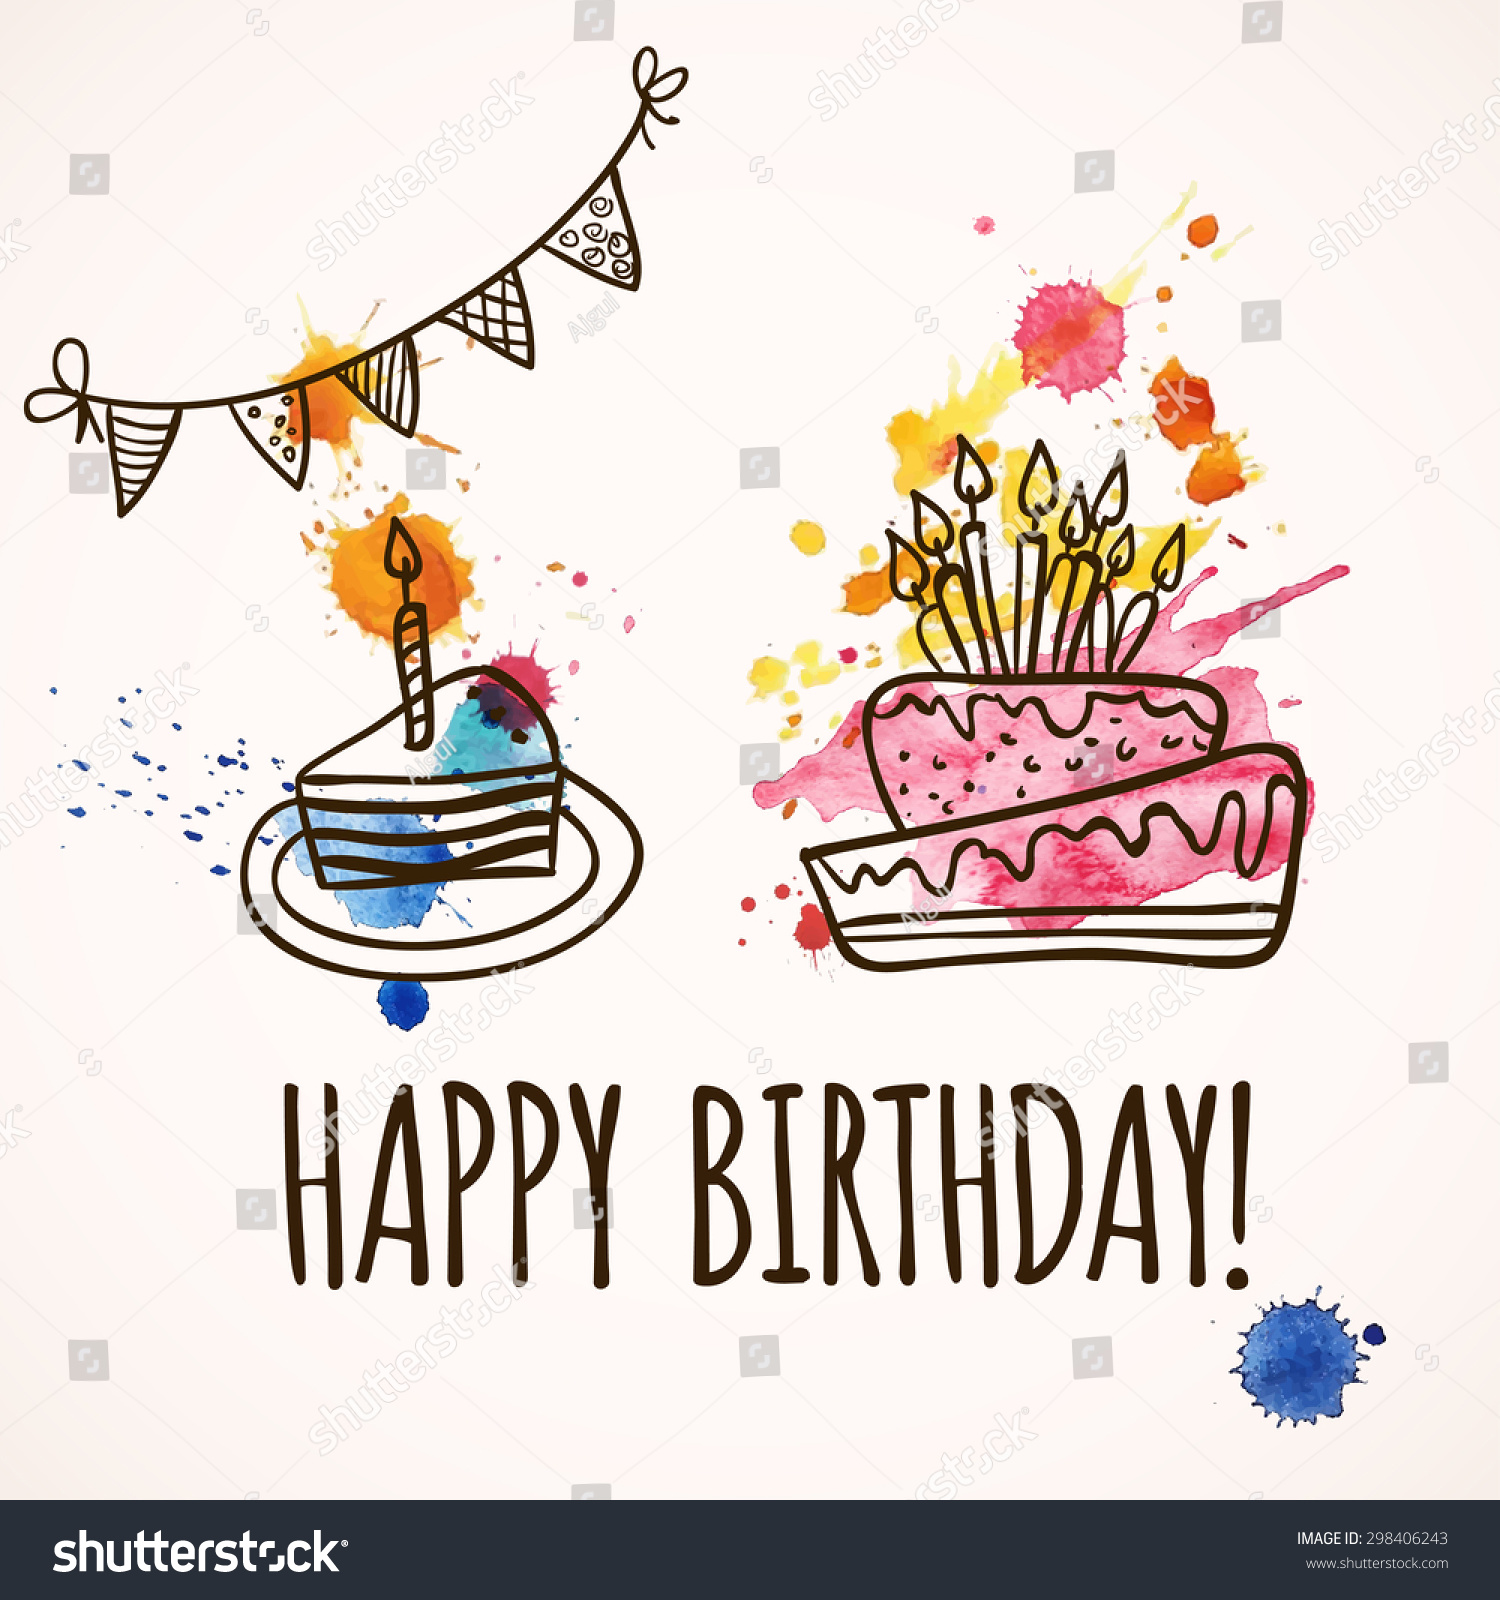 Happy Birthday Illustration Font ~ Happy birthday card with doodle hand drawn cake vector illustration